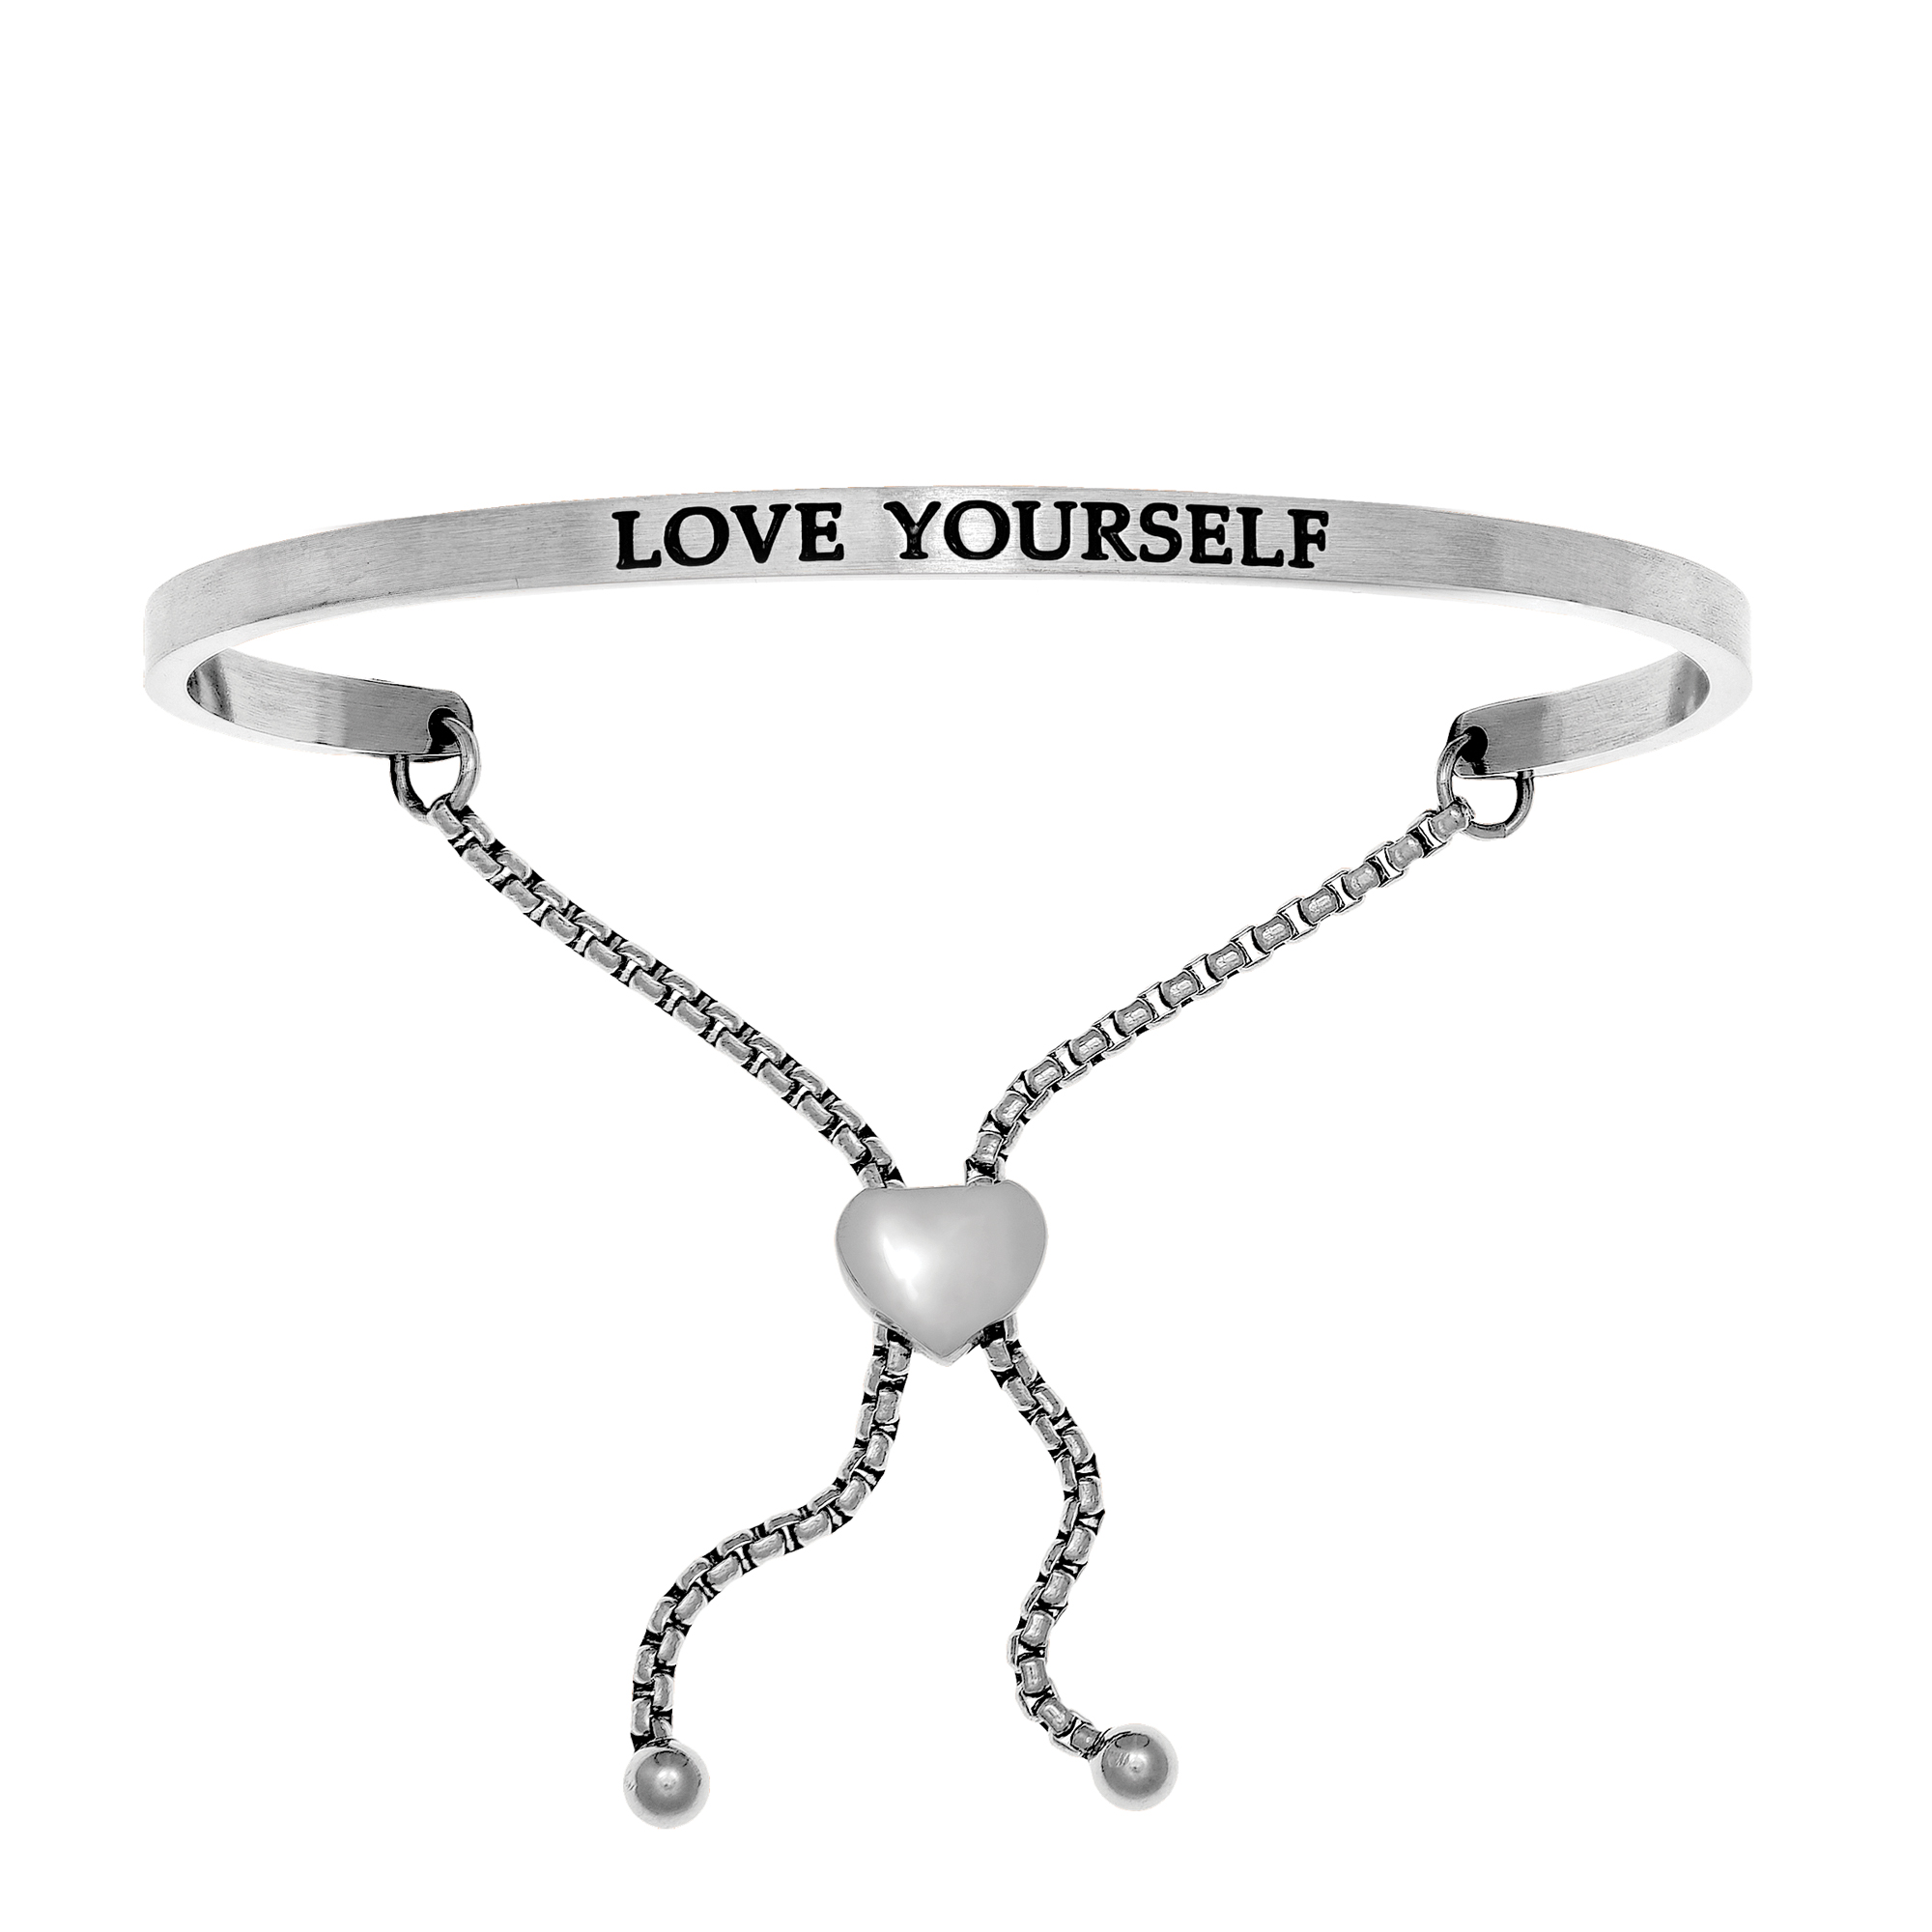 Intuitions Stainless Steel LOVE YOURSELF Diamond Accent Adjustable Bracelet Each of these bracelets carries a personal message of inspiration, spirituality or just plain fun. Meant to be worn alone or stacked together for a smart, contemporary look, they're a great self-purchase or as a gift for family or friends. Intuitions are made of stainless steel and come in two styles standard cuff or friendship and fit practically any wrist. Intuitions Jewelry makes the difference in your daily life by designing and creating bracelets and bangles with motivational quotes to inspire you and your loved ones. Giving back $.25 of each bracelet to BABY2BABY